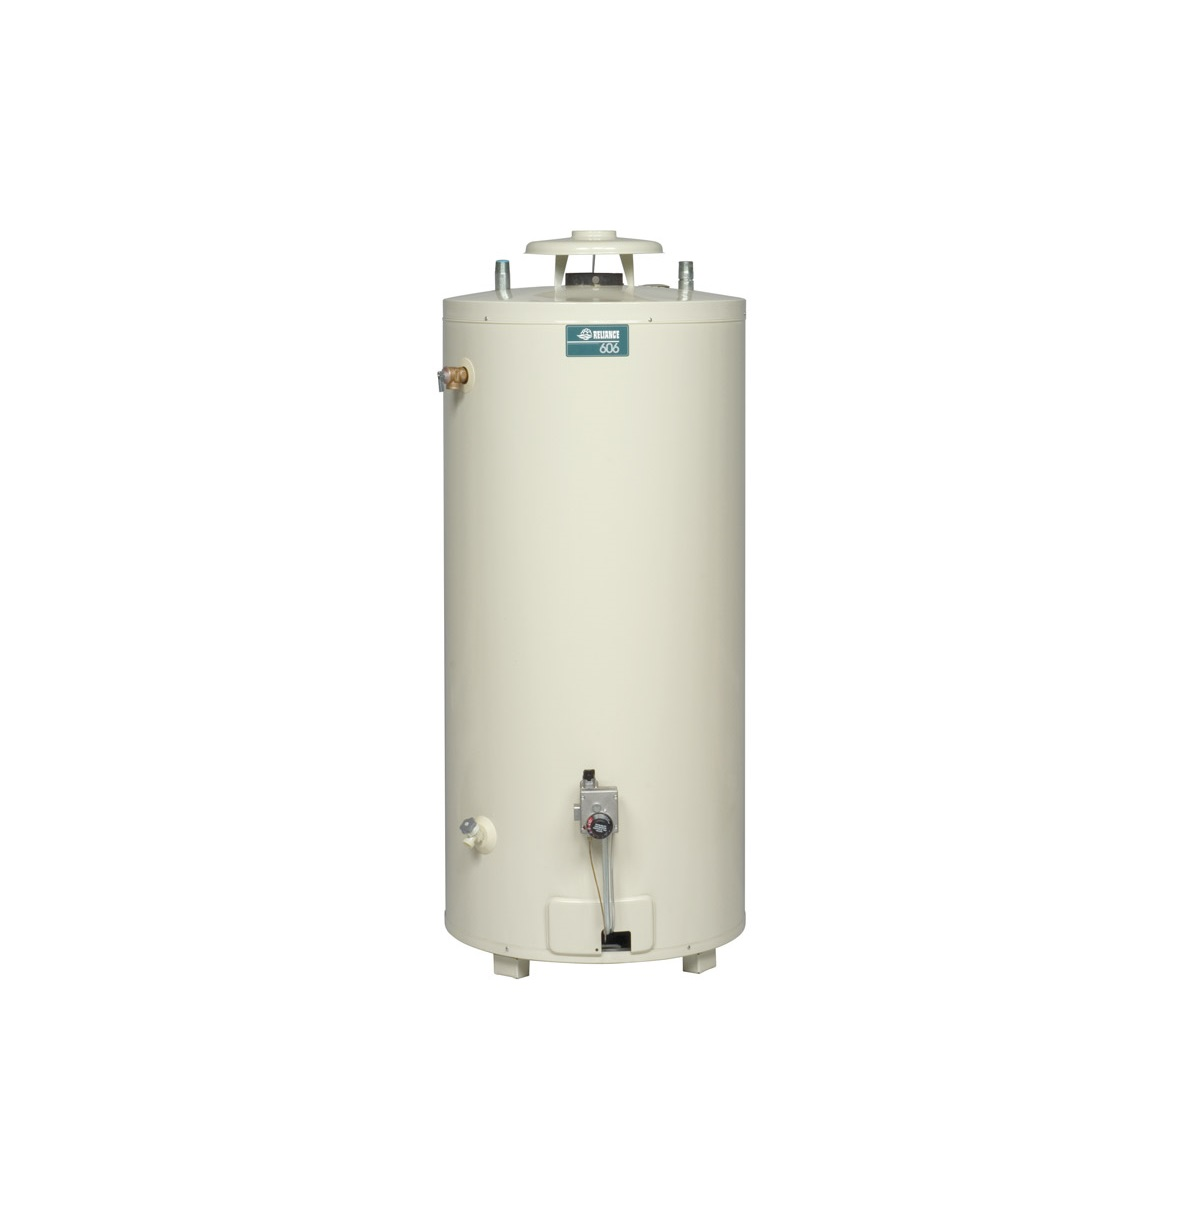 75 gallon gas water heater extractor fan and splashback